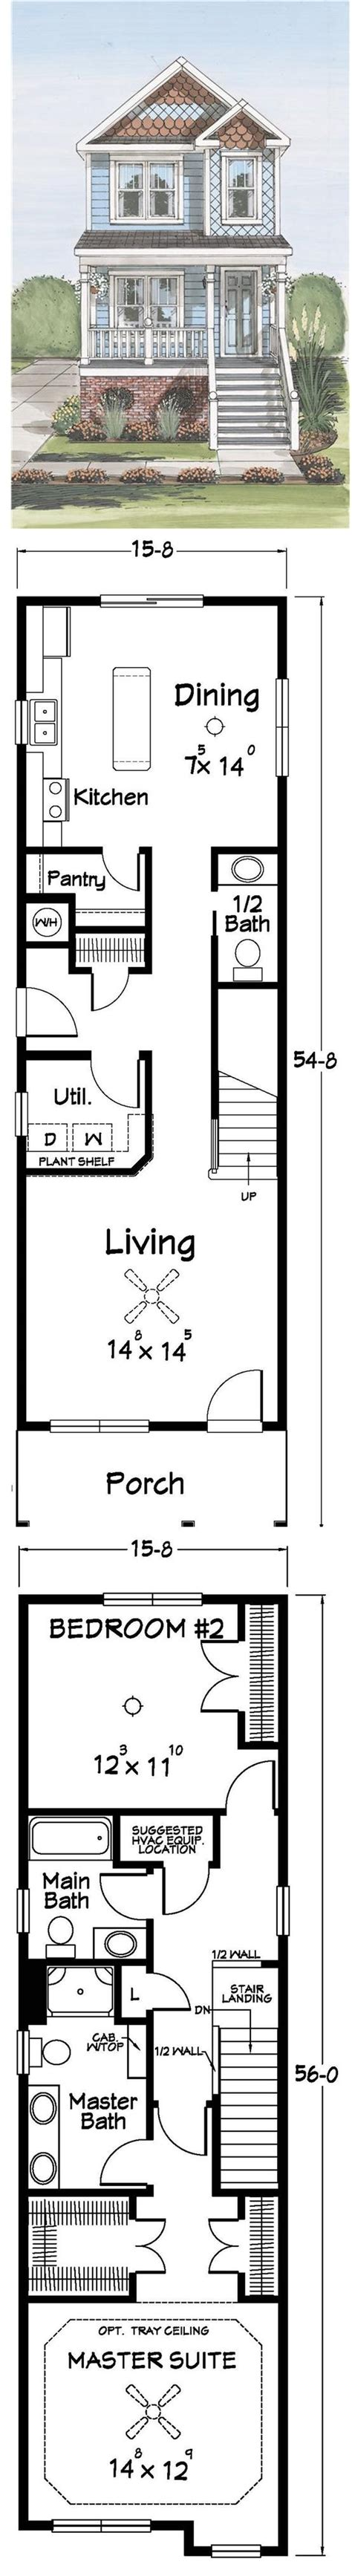 narrow house floor plan narrow house plans woodworking projects plans